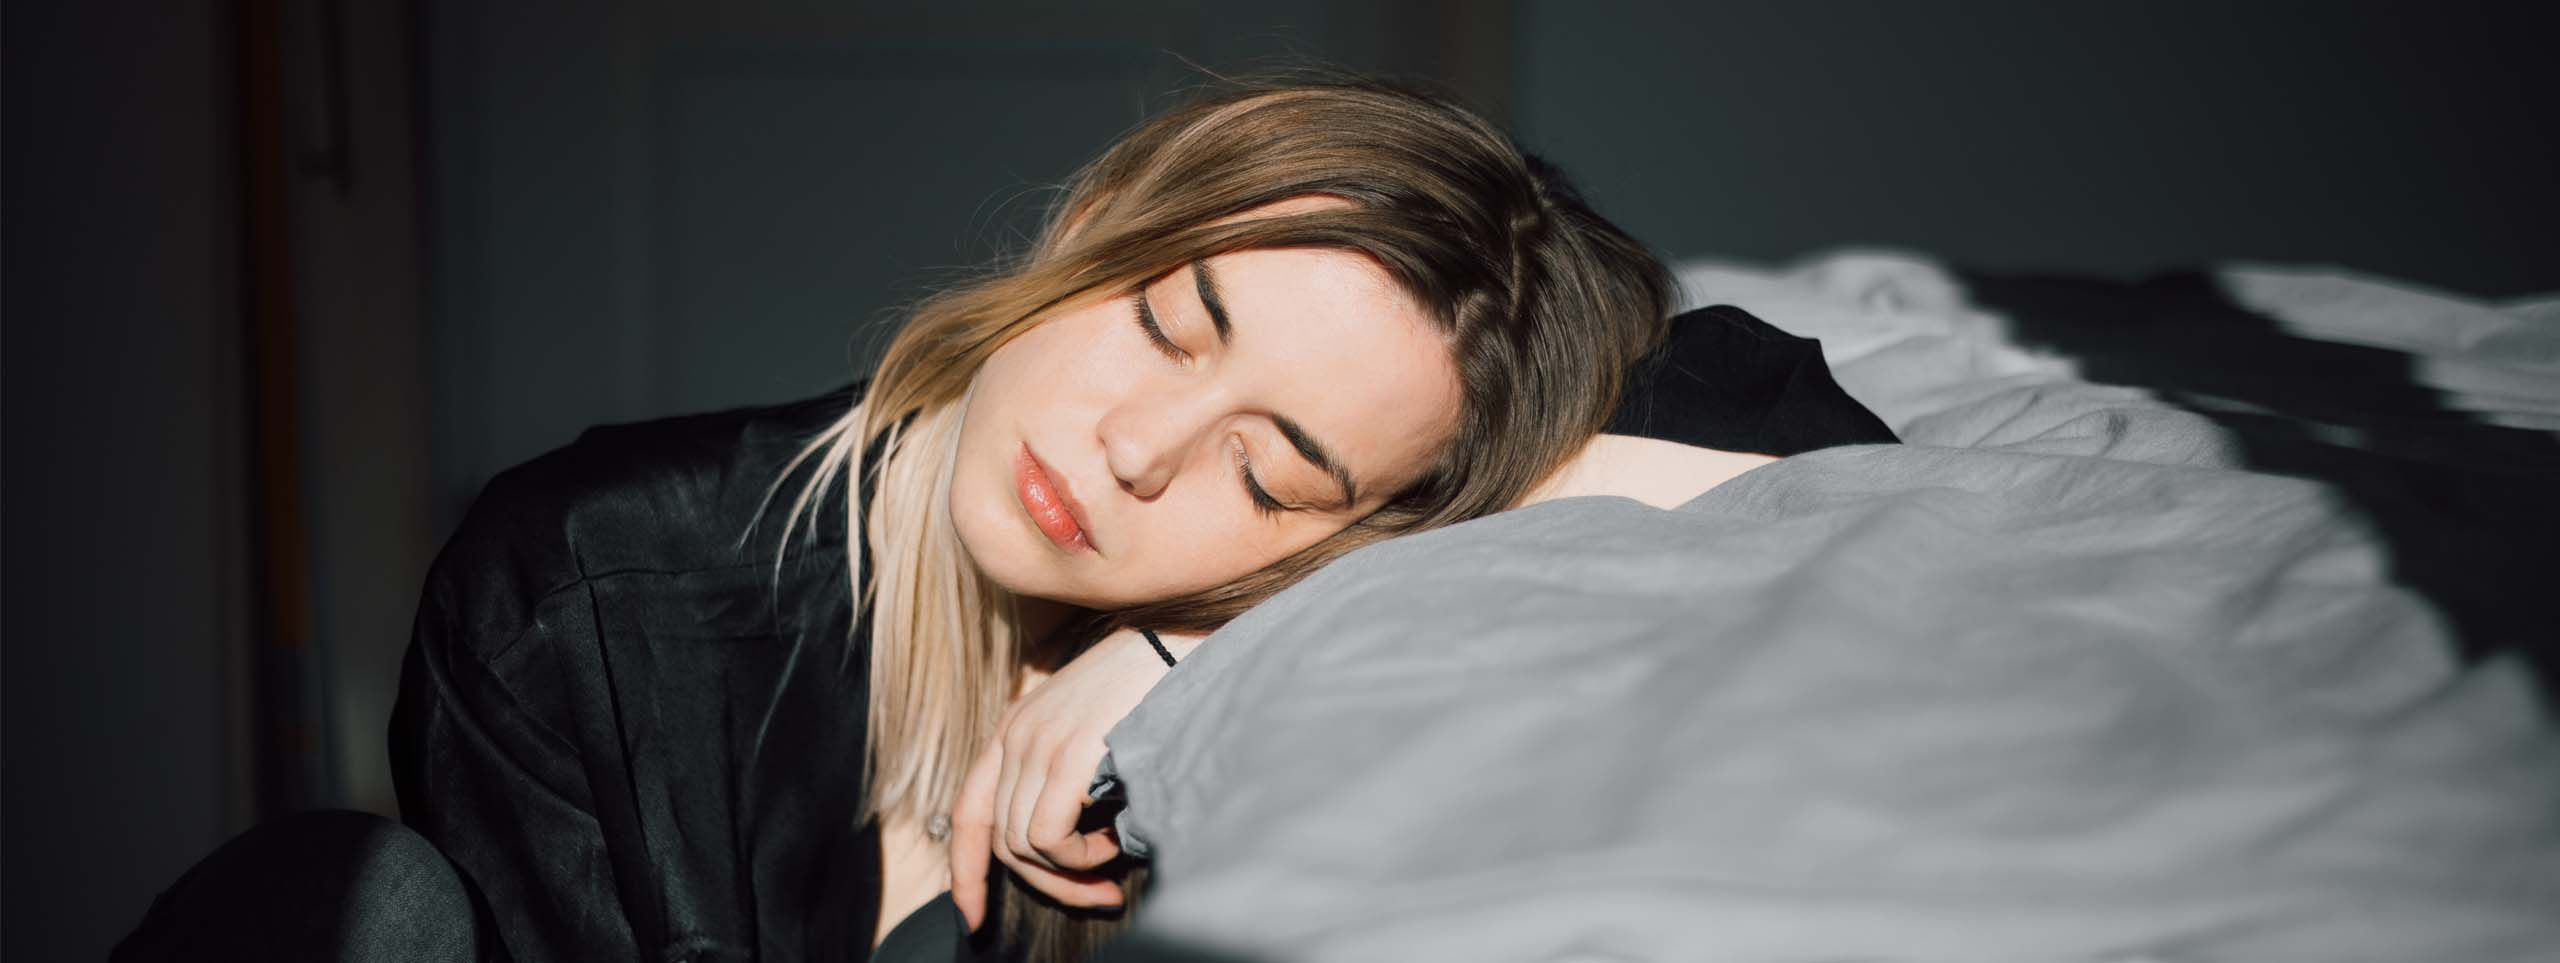 Young woman with zigzag part closing her eyes and resting her head on her arm